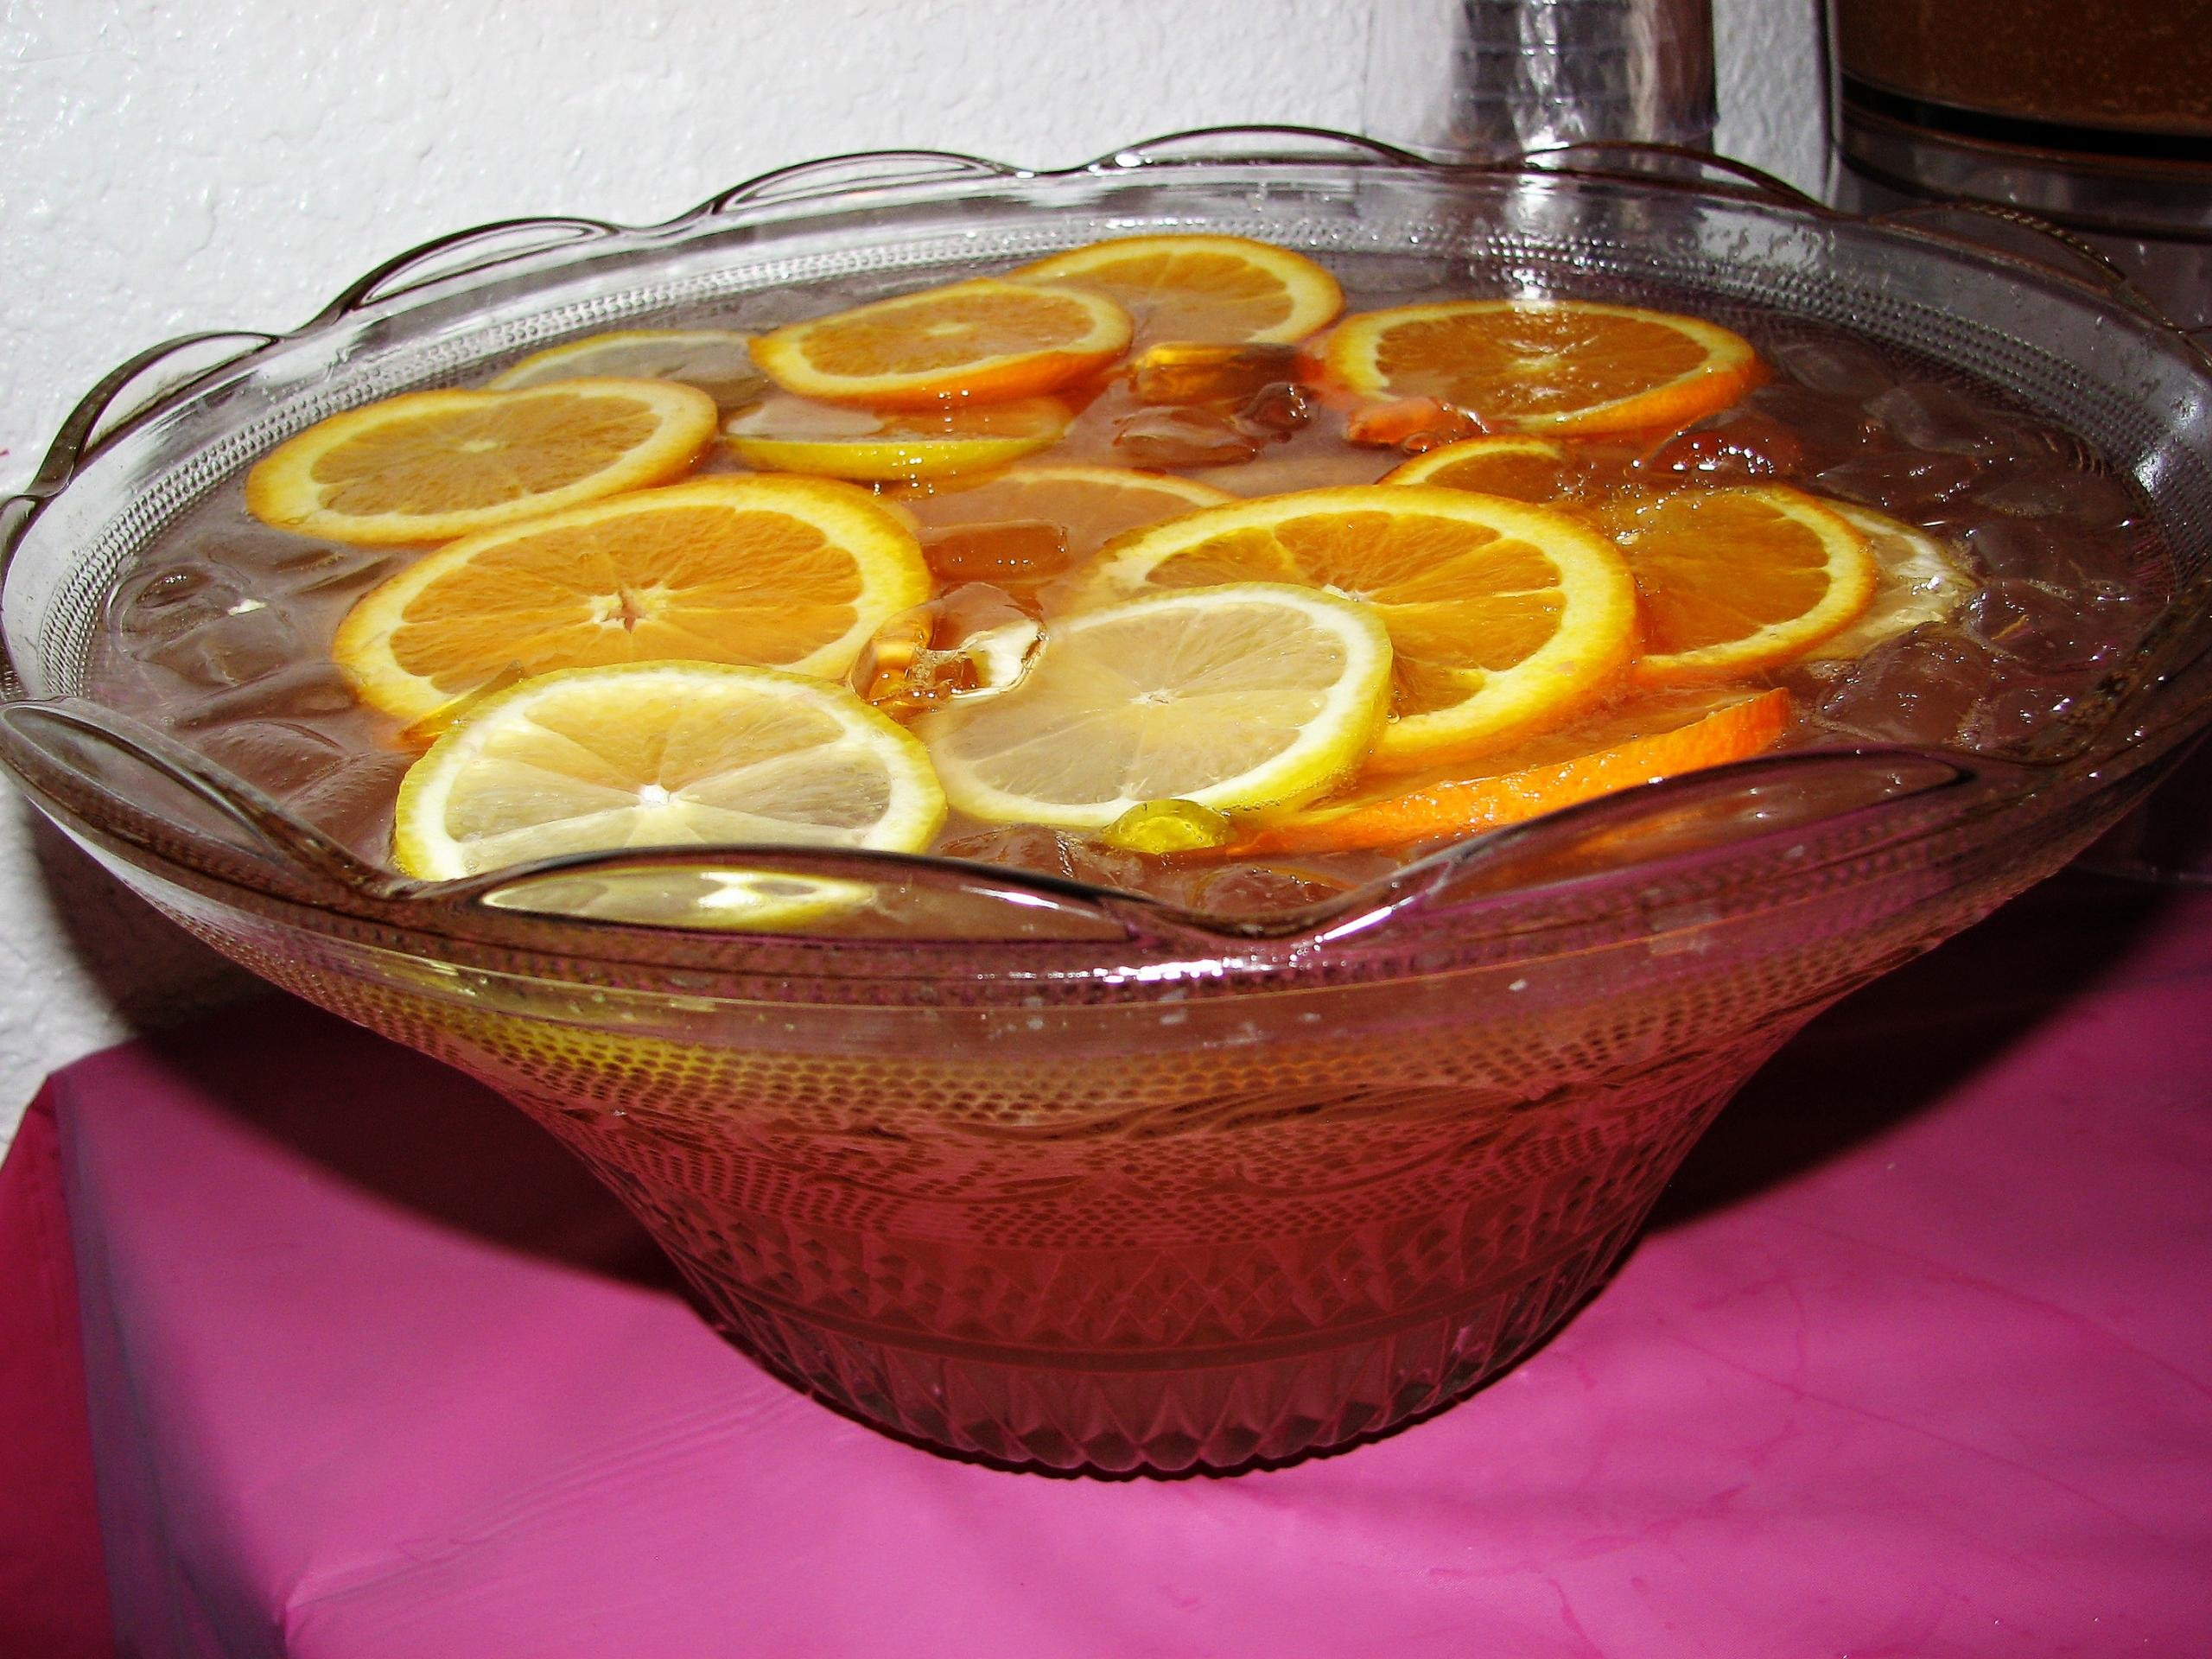 Sparkling Punch in a serving bowl on a table